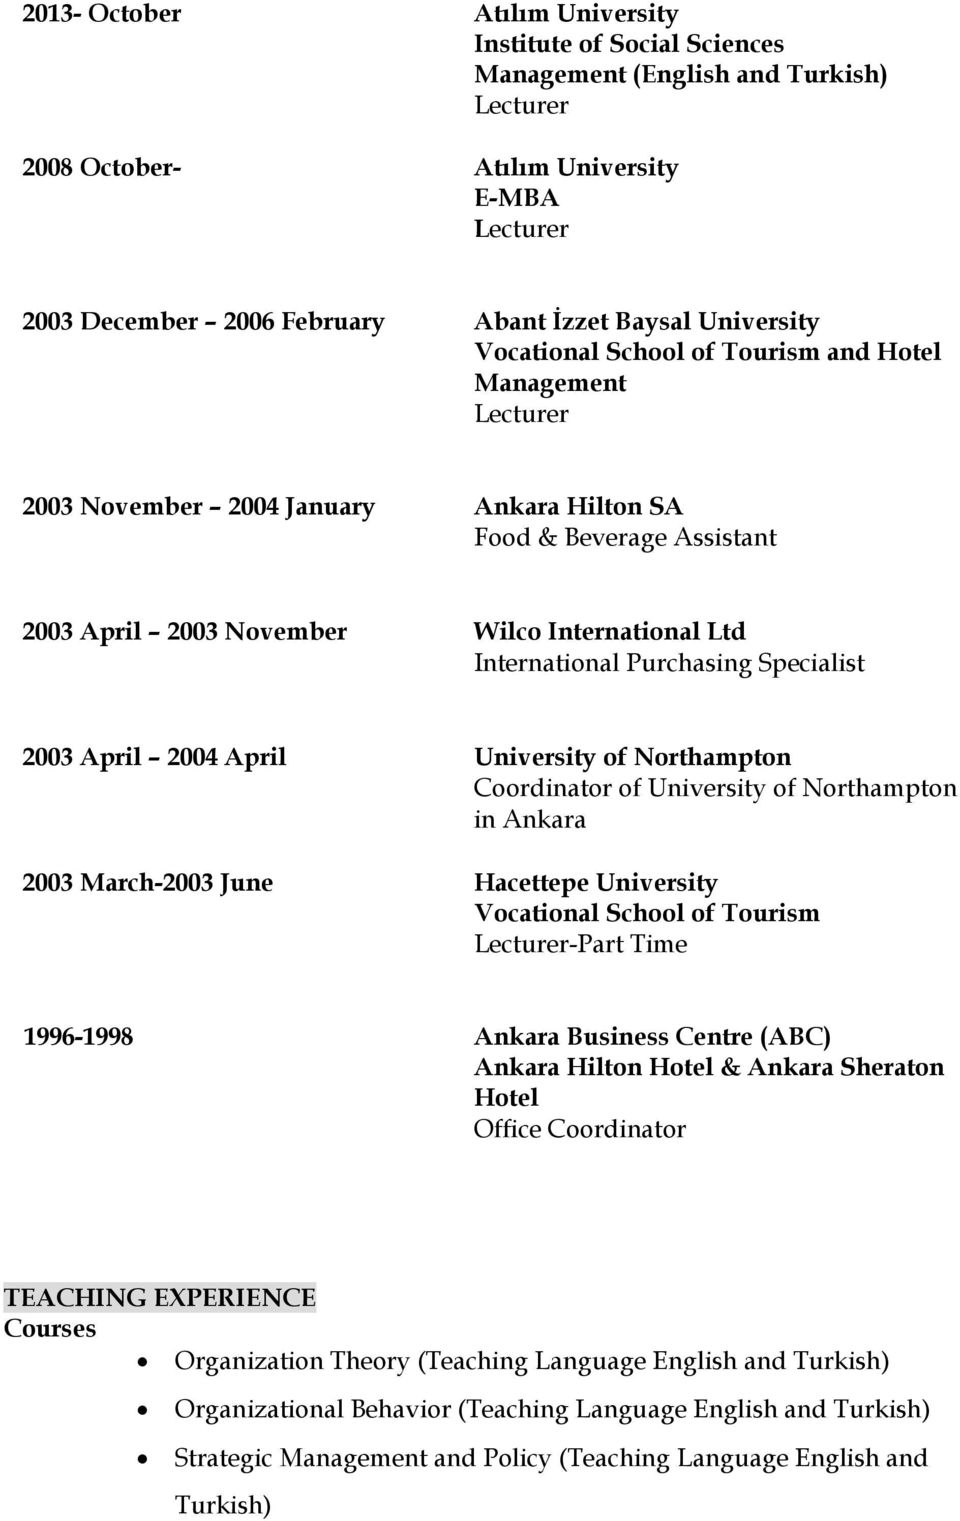 Specialist 2003 April 2004 April University of Northampton Coordinator of University of Northampton in Ankara 2003 March-2003 June Hacettepe University Vocational School of Tourism -Part Time